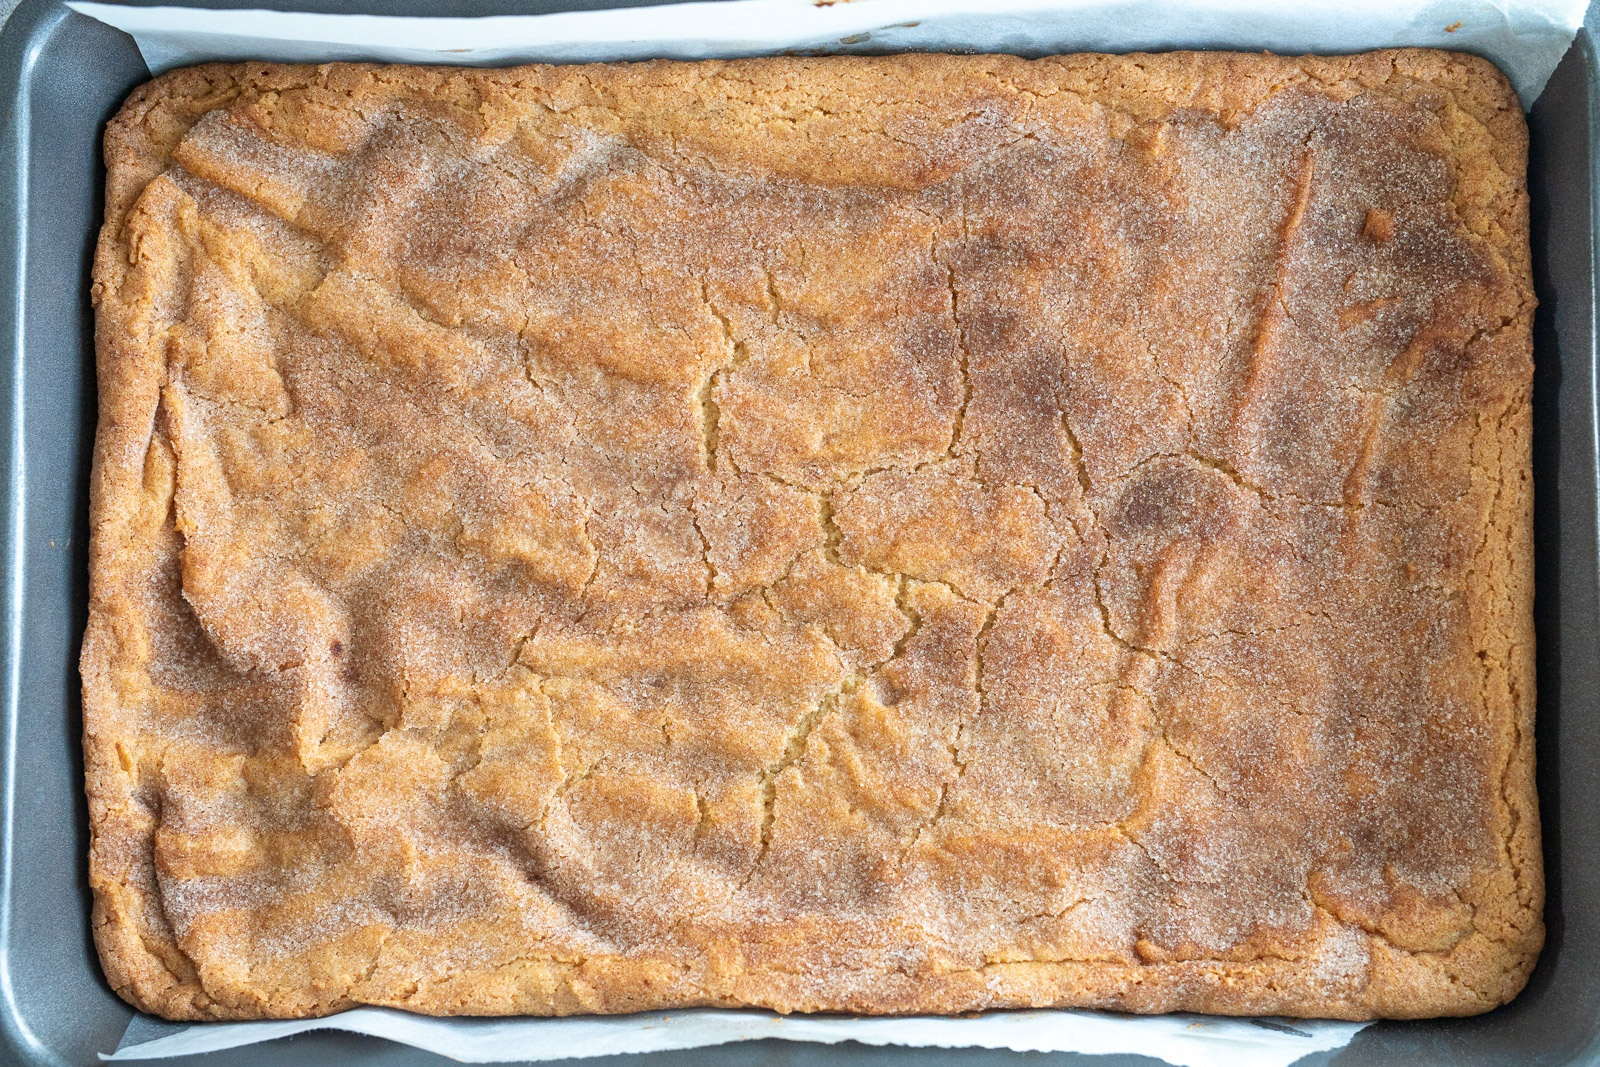 Baked snickerdoodle bar in a 9x13 pan.